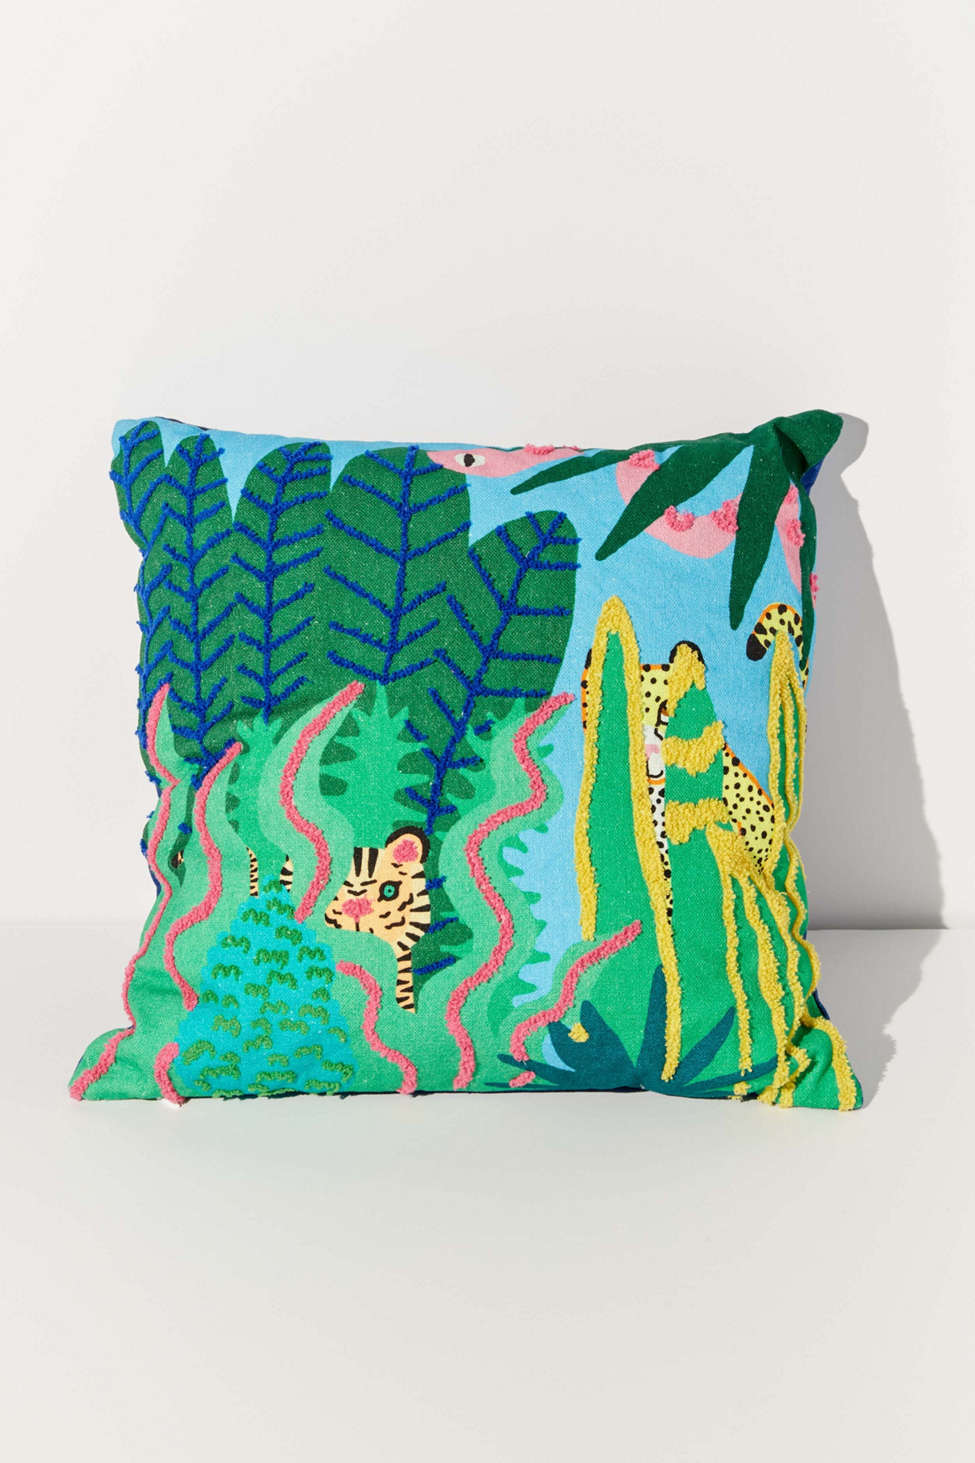 Slide View: 1: Jarmél By Jarmel For UO Wild Buddies Throw Pillow